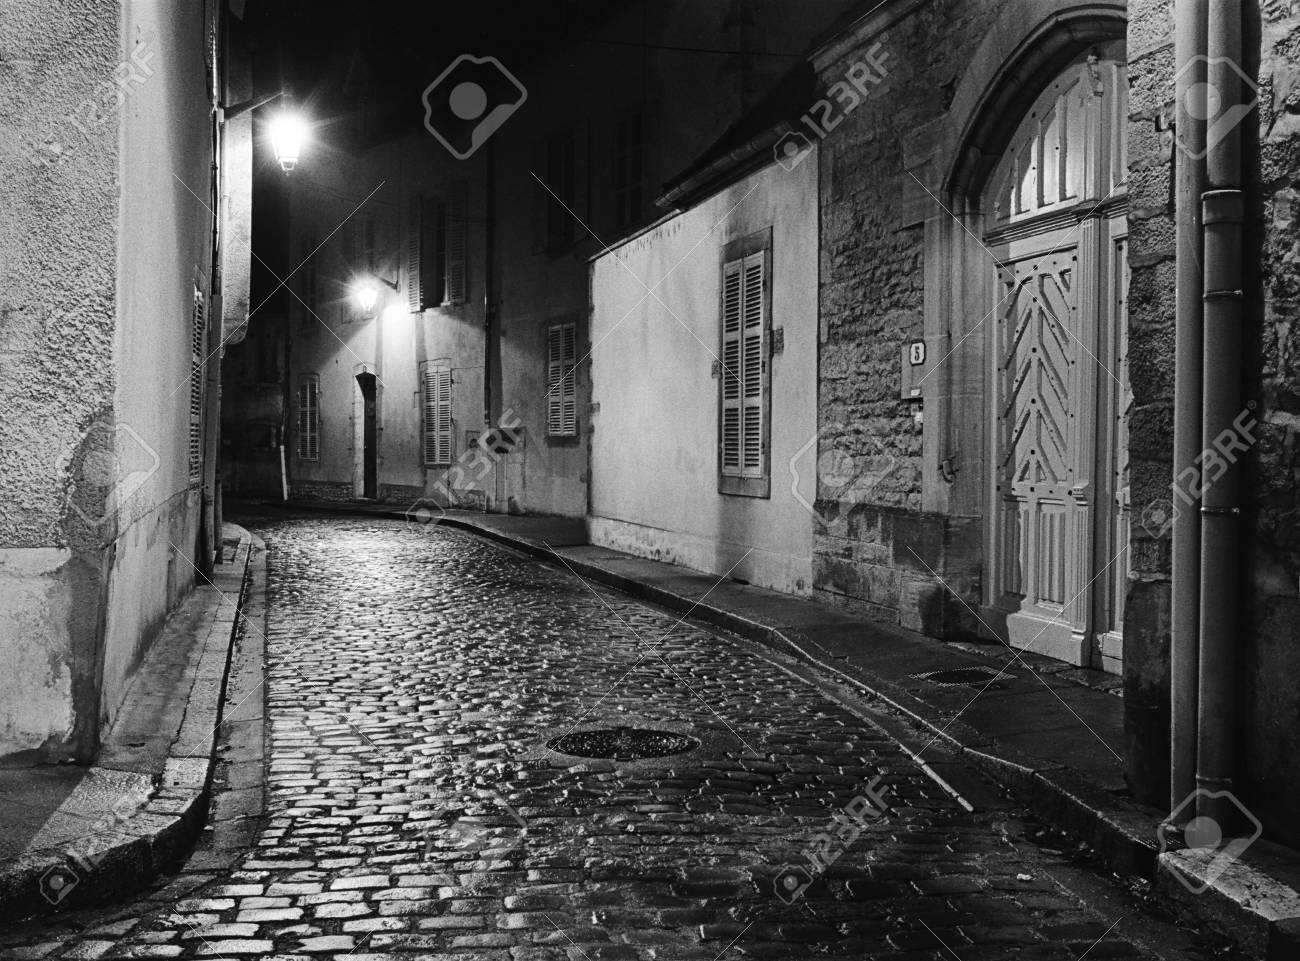 Black and white film a night scene captures an empty alleyway in beaune france where the wet cobblestones are